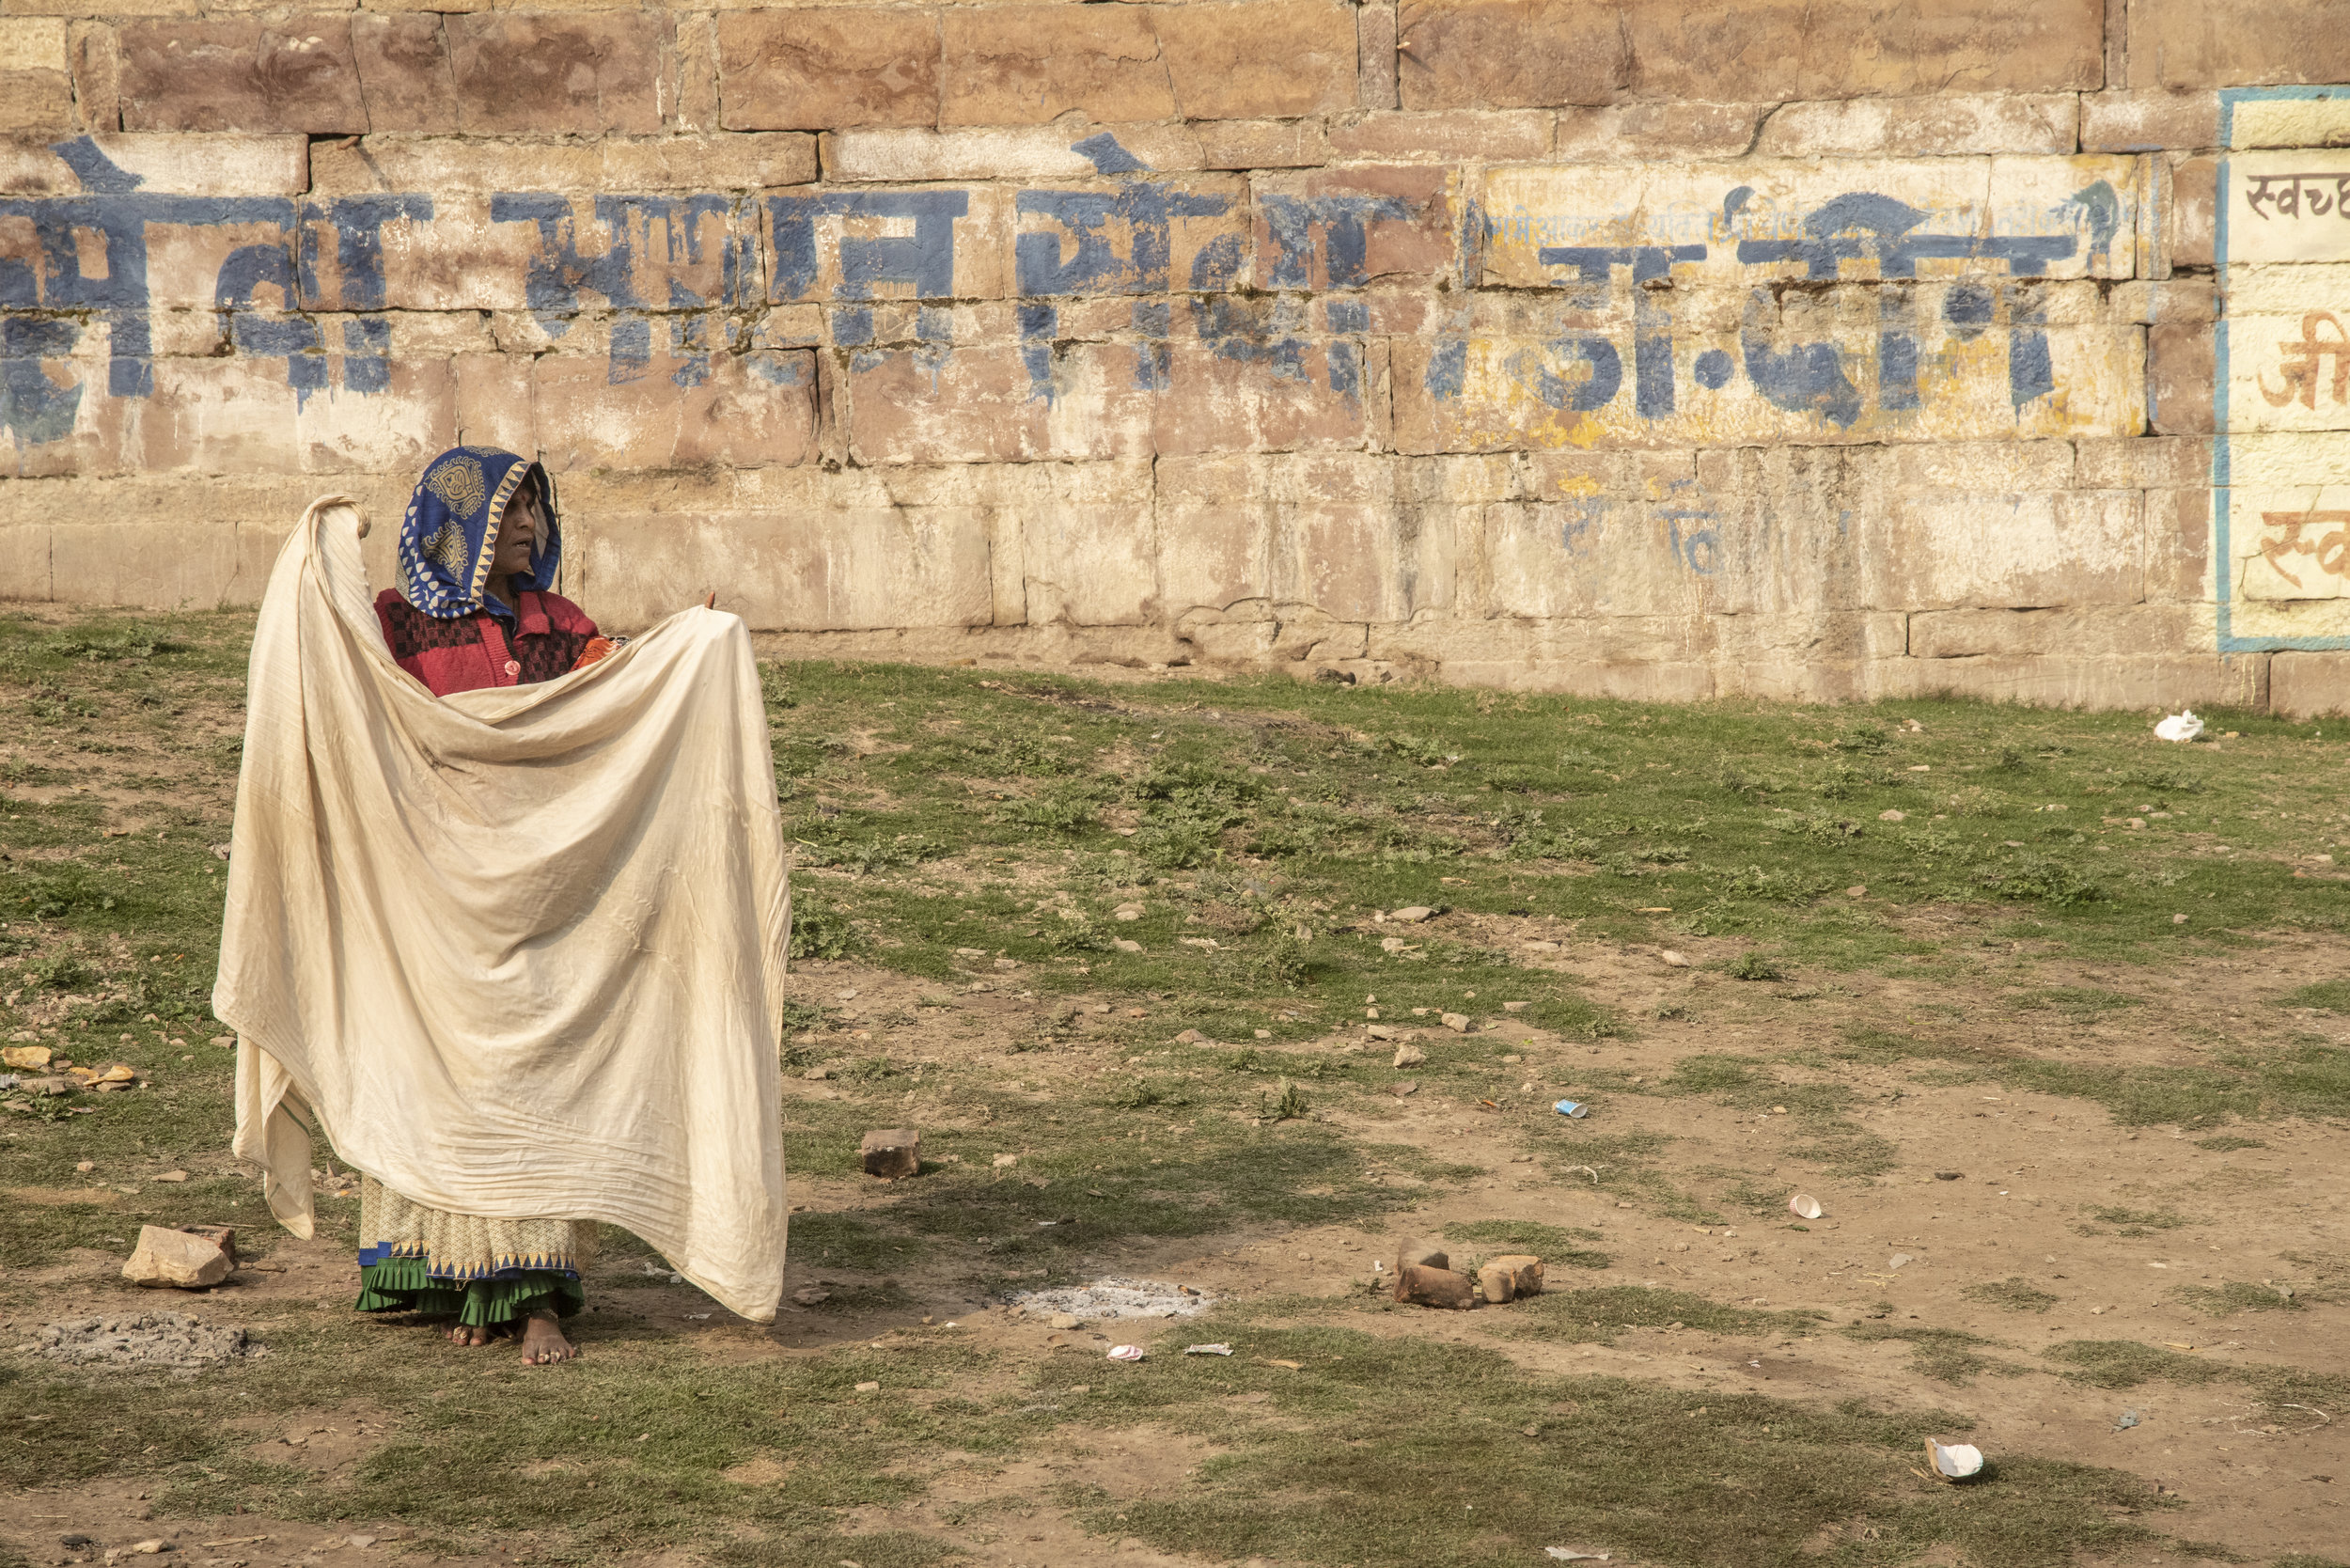 Woman stands afield, drying clothes in the sun